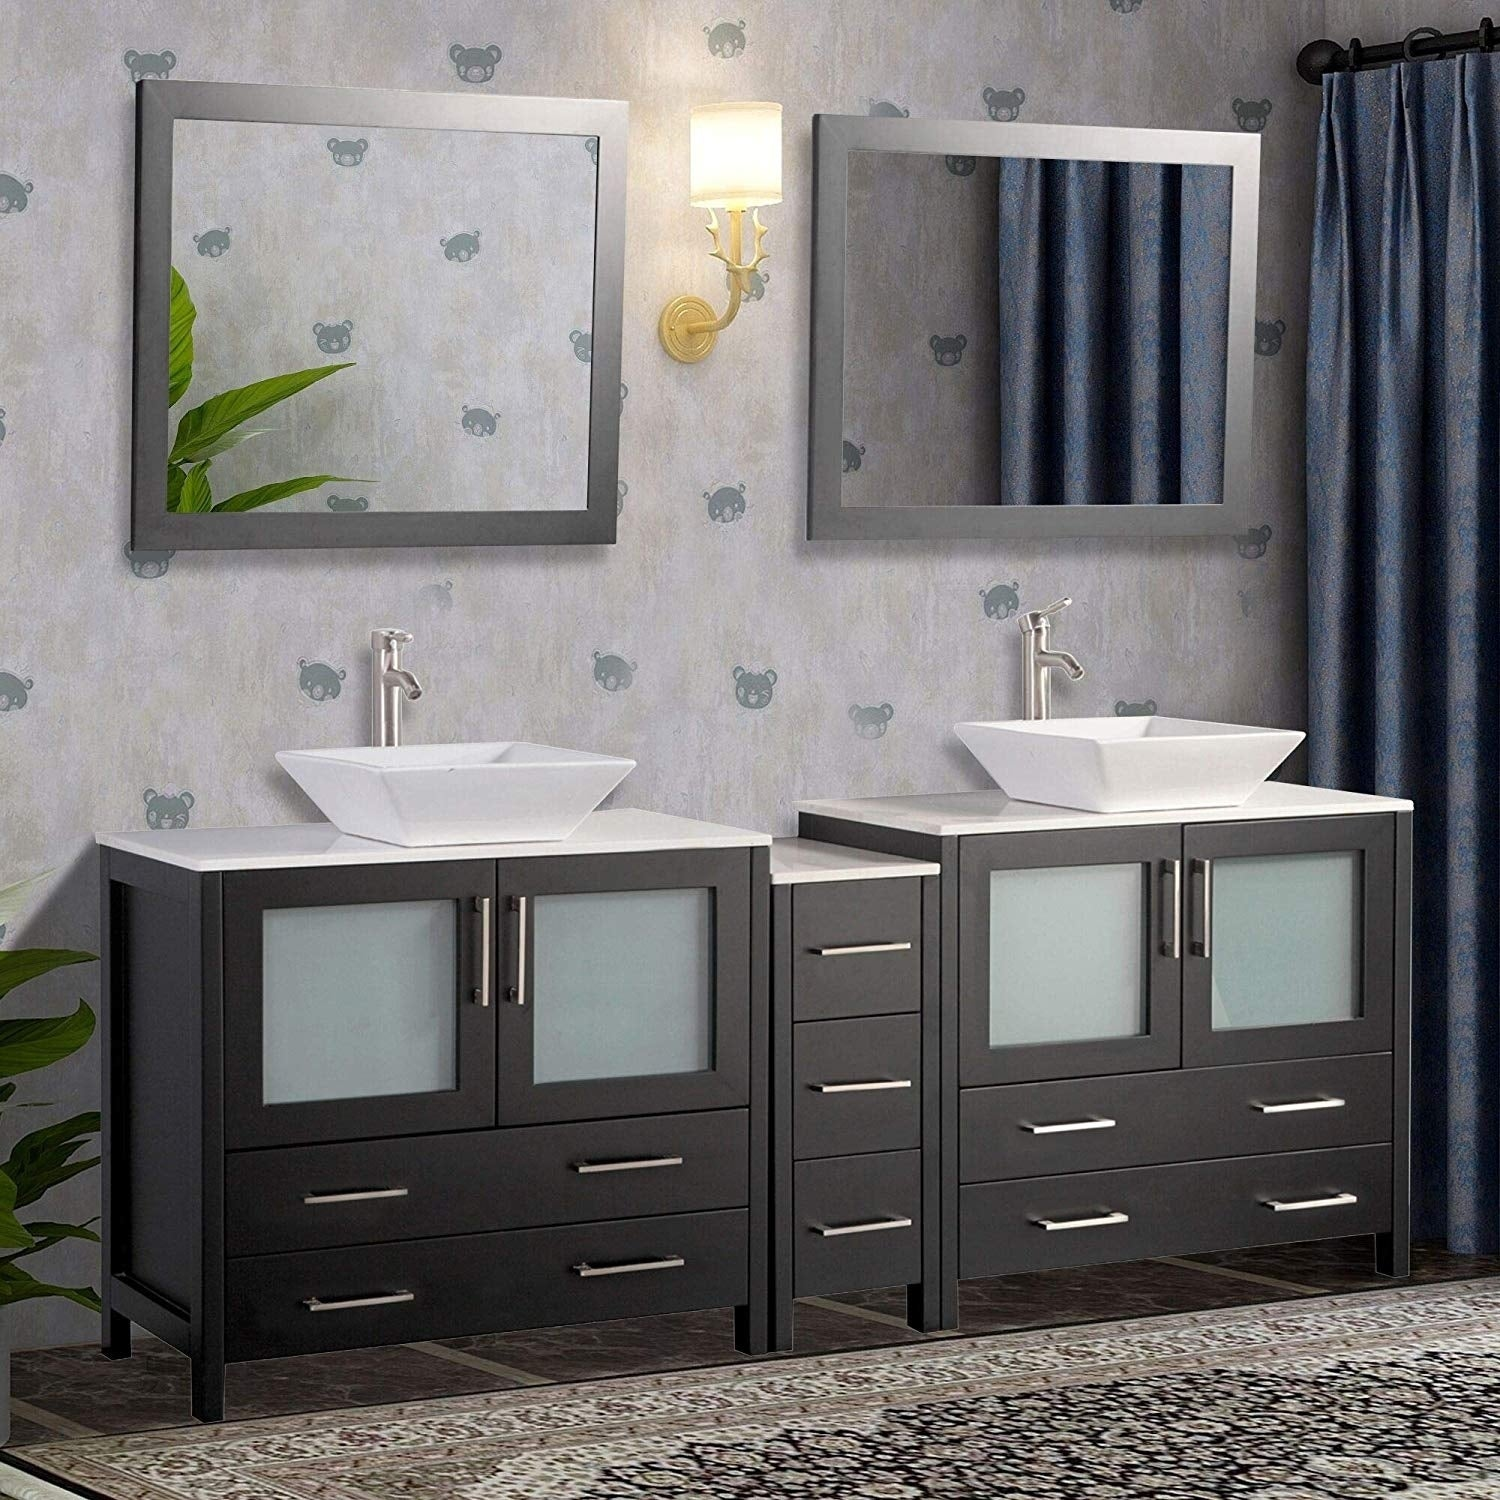 Contemporary Office Interior Design, Shop Black Friday Deals On Vanity Art 108 Double Sink Bathroom Vanity Set 13 Drawers 5 Cabinet 2 Shelves With Quartz Top Free Mirror On Sale Overstock 13681616